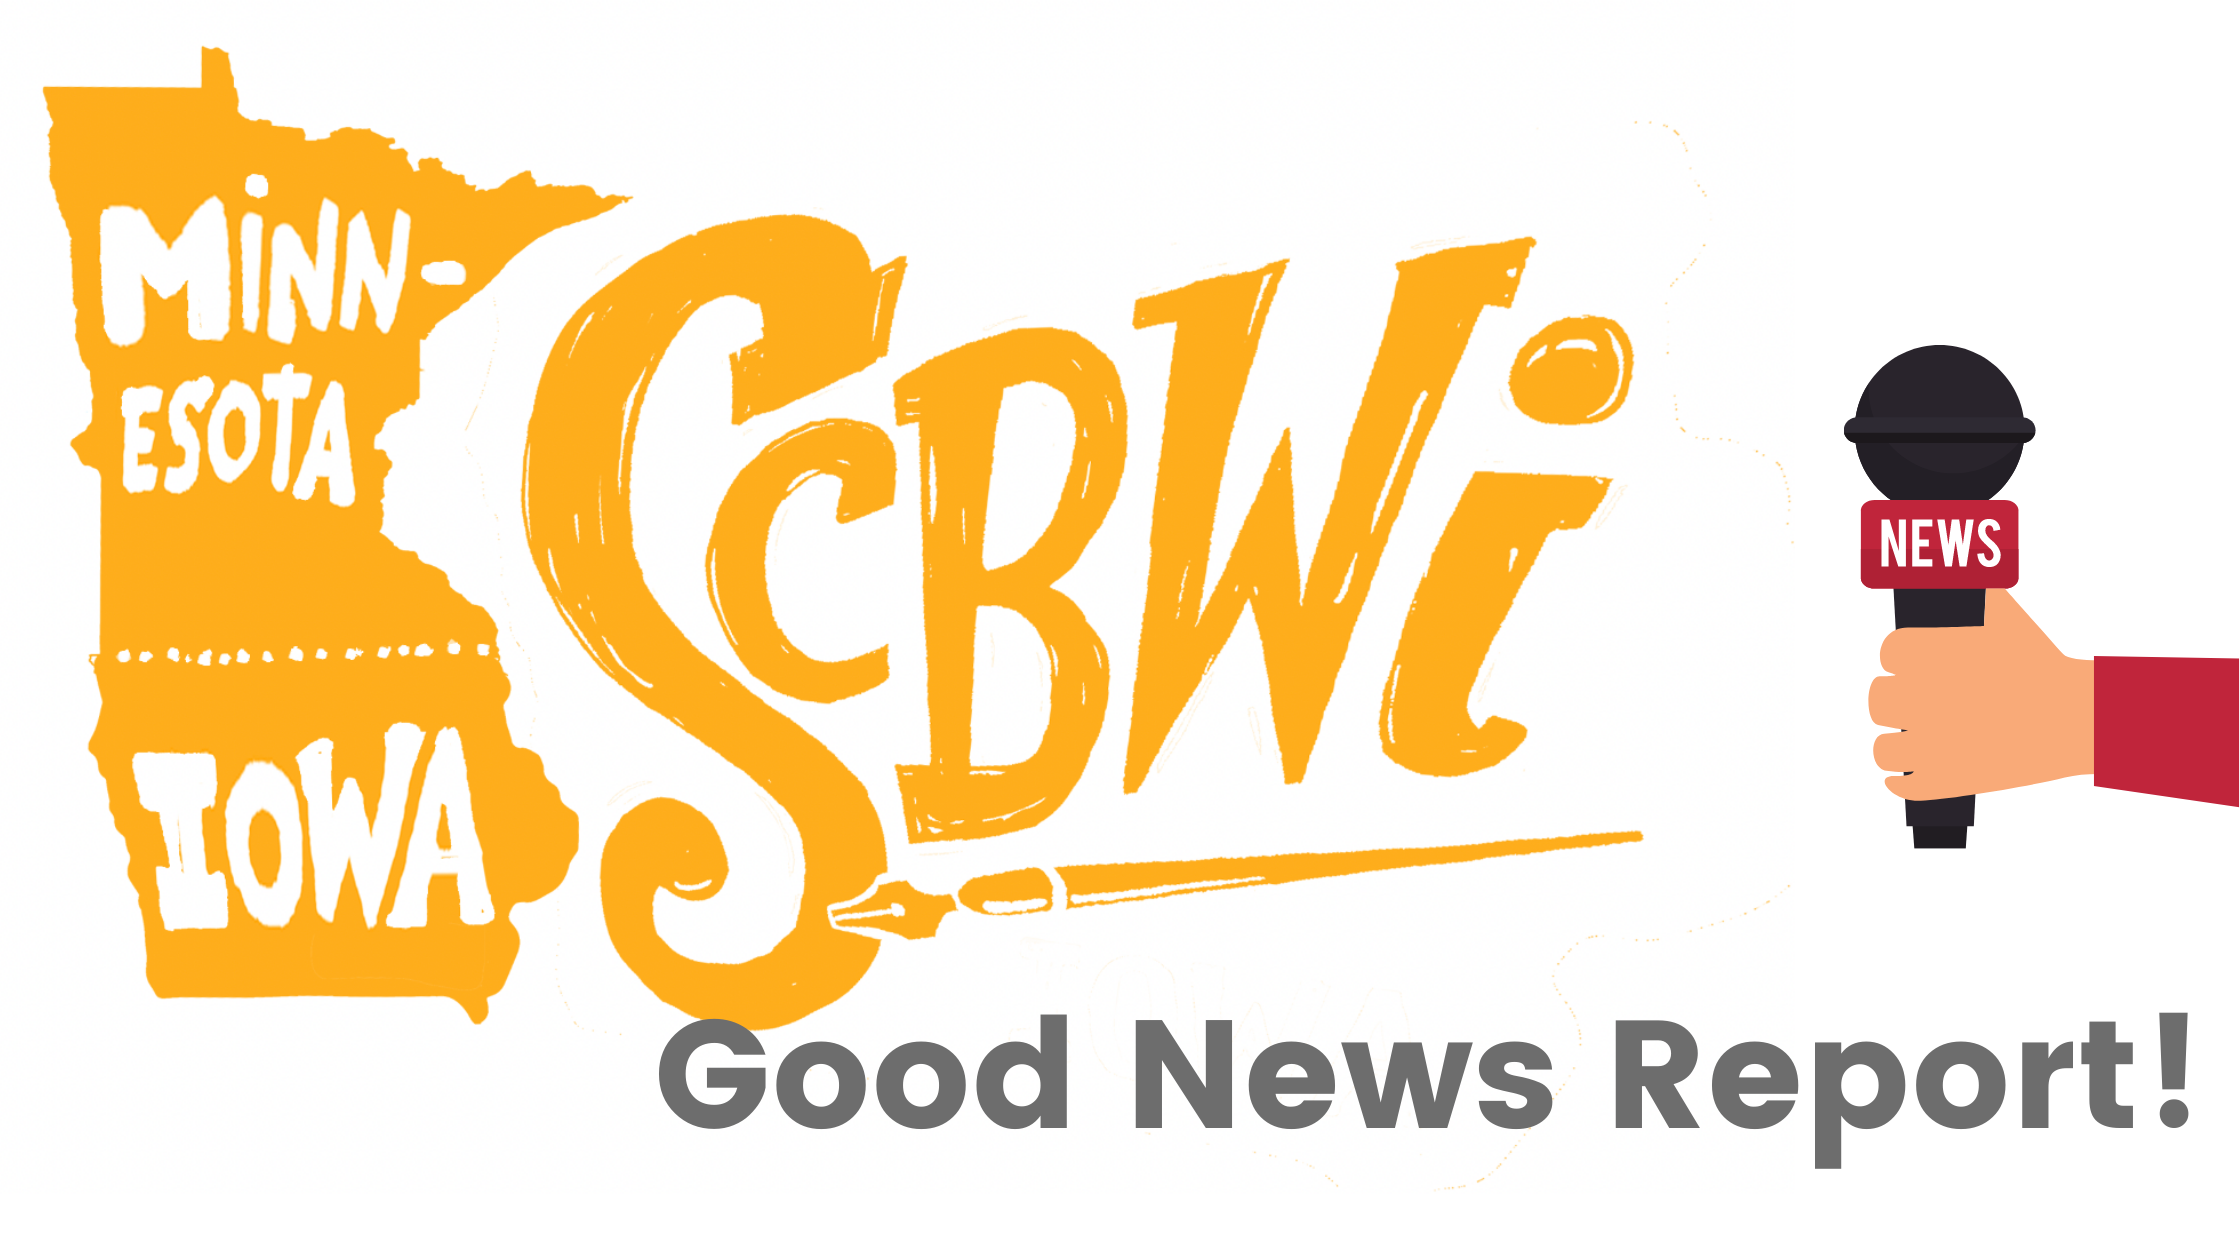 Hi All! We're so excited to share some exciting things that have been happening around our region with our authors & illustrators. Below is a list of some of the highlights from this past quarter: Stacy Ebert - Debut Picture Book Release: Stacy's second children's book, but debut picture book,Hello World!releases April 6, 2021. Illustrated by her, written by NYT bestselling author, PBS show and podcast host ofTell Me More, Kelly Corrigan. They are also collaborating on a second picture book for 2022. Both published by Penguin Random House/Flamingo Books, with esteemed editor, Margaret Anastas.Learn more about her and the new PRH imprintbeing launched with three titles including hers. Hello World!even made it on the Brightly site's